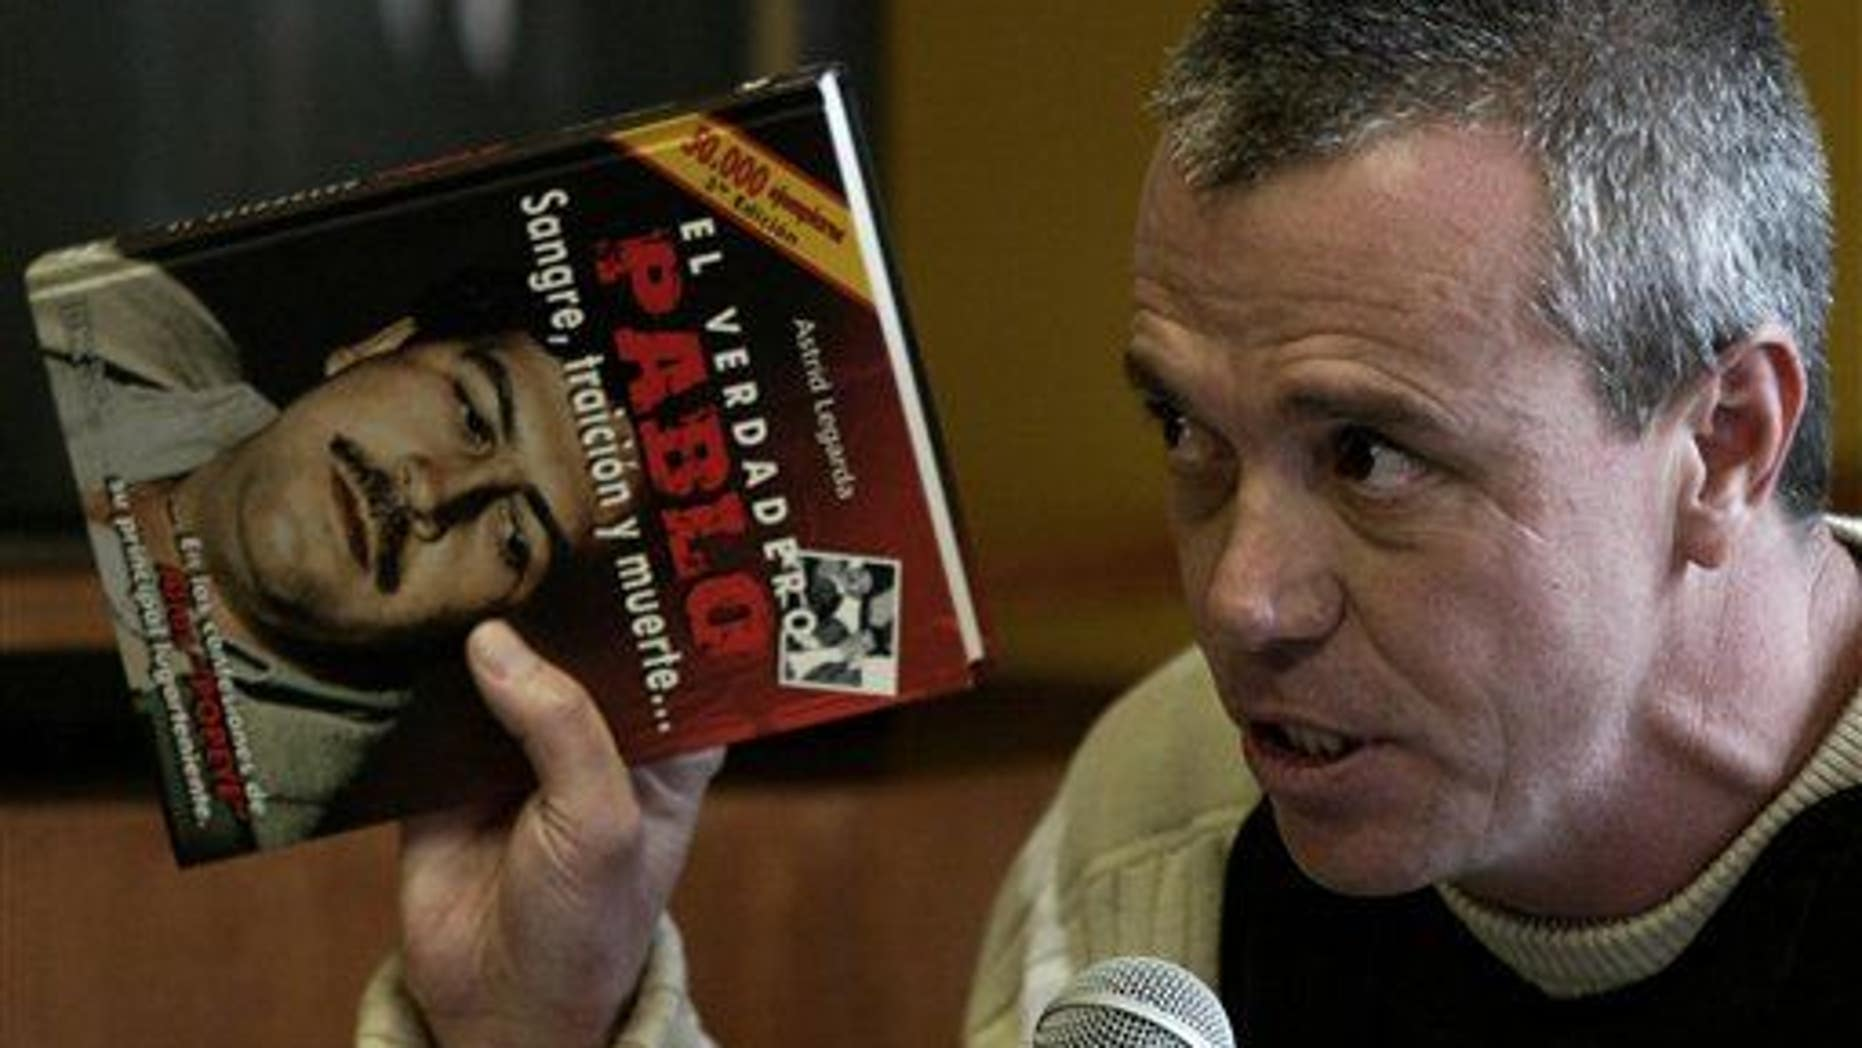 """In this June 27, 2006, photo, Jhon Jairo Velasquez, a former hit man for Pablo Escobar, testifies while holding a book titled """"The True Pablo: Blood, Treason, and Death."""""""